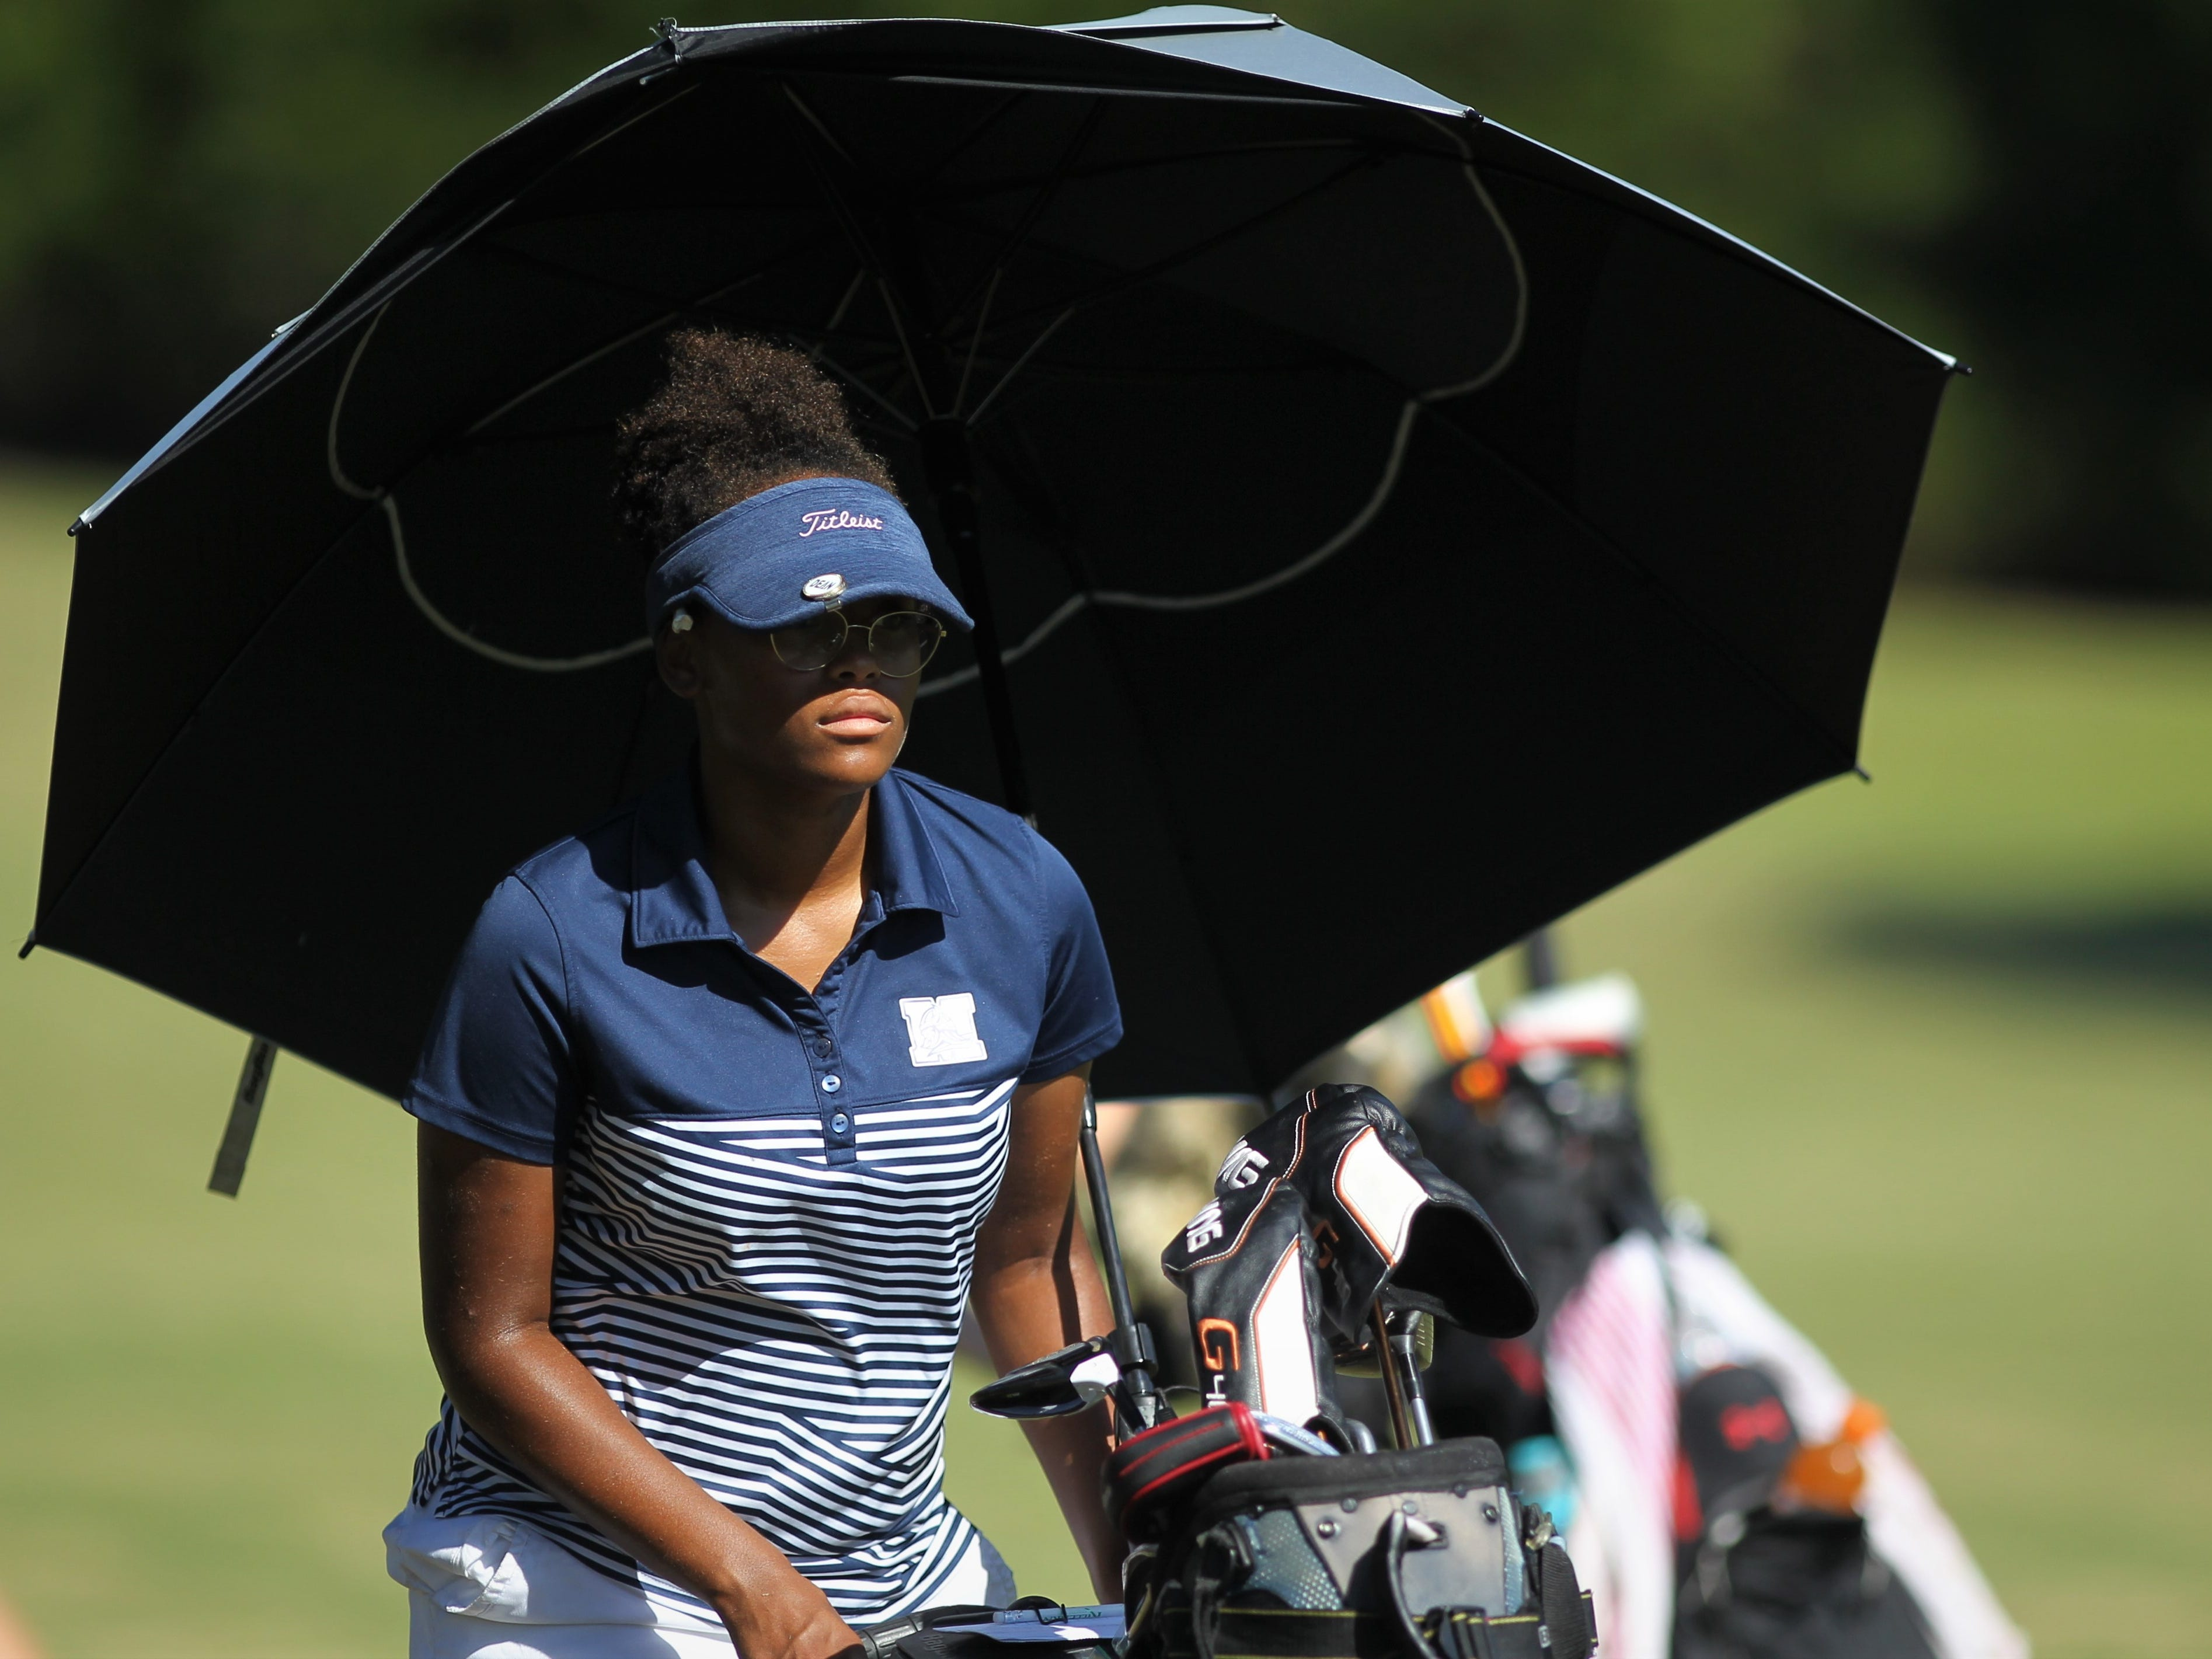 Maclay sophomore Annika Dean plays in the girls golf Panhandle Invitational at Killearn Country Club, Oct. 4, 2018.